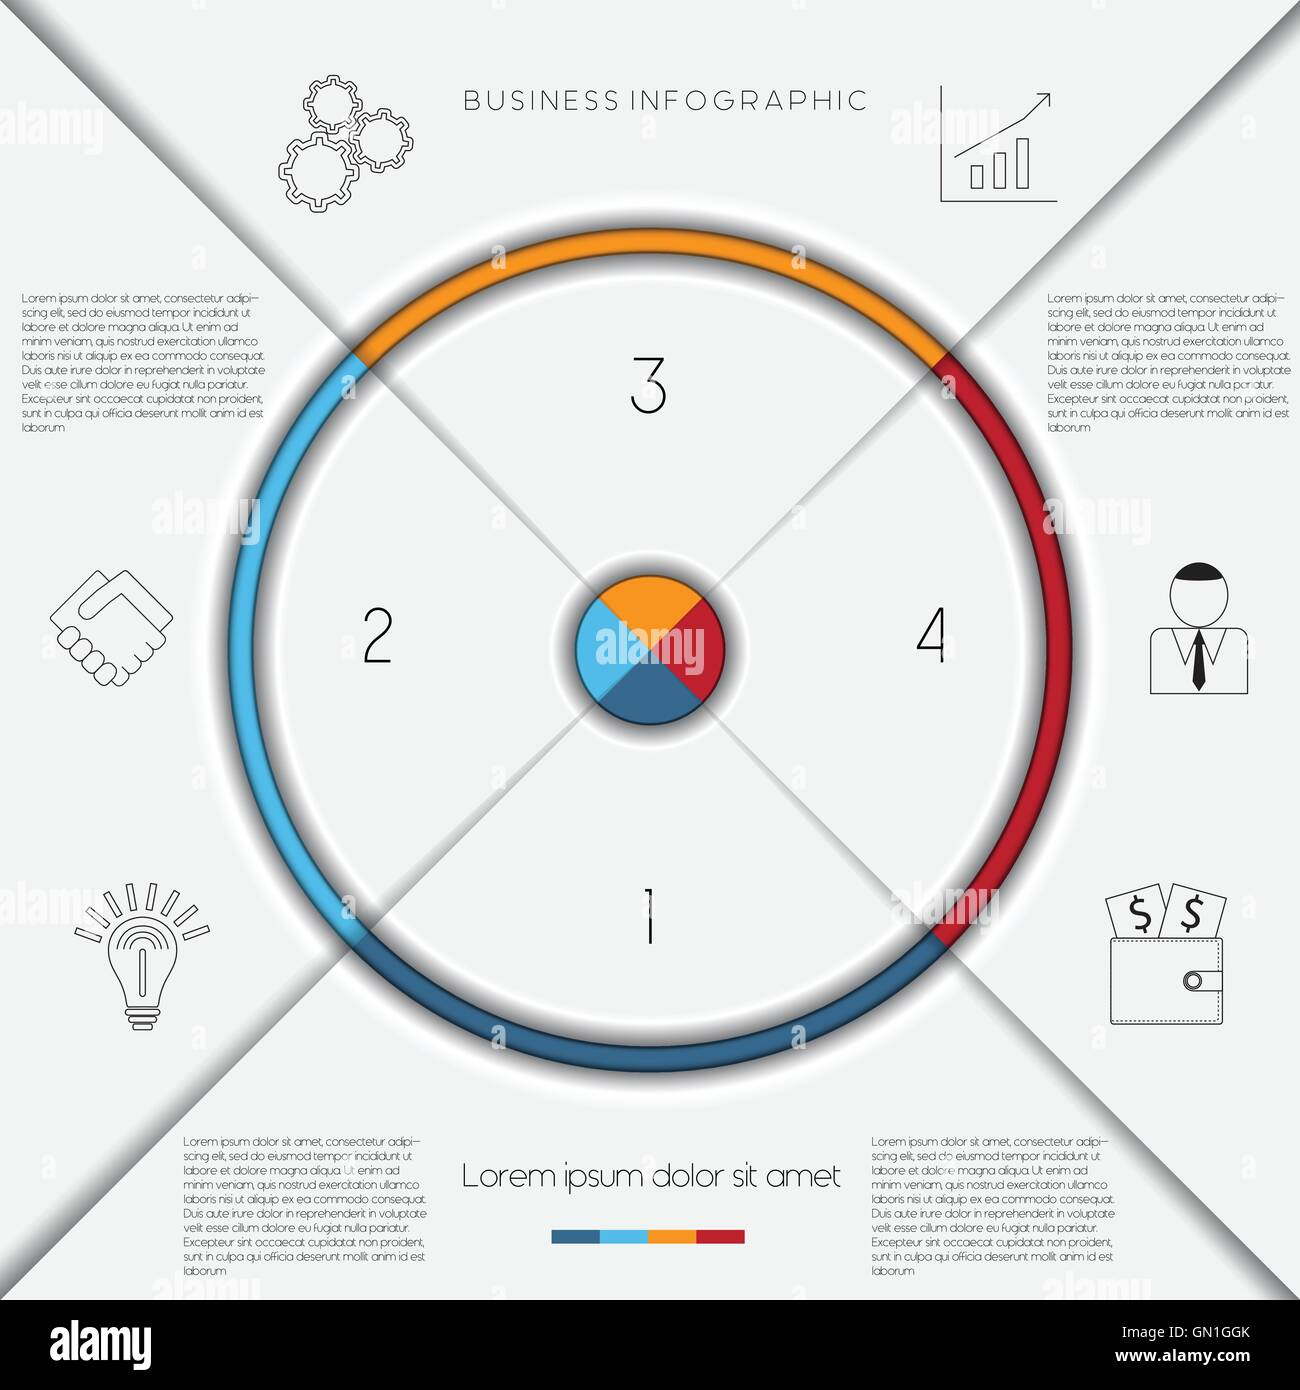 Infographic business process or workflow template with text areas on infographic business process or workflow template with text areas on 4 positions friedricerecipe Gallery